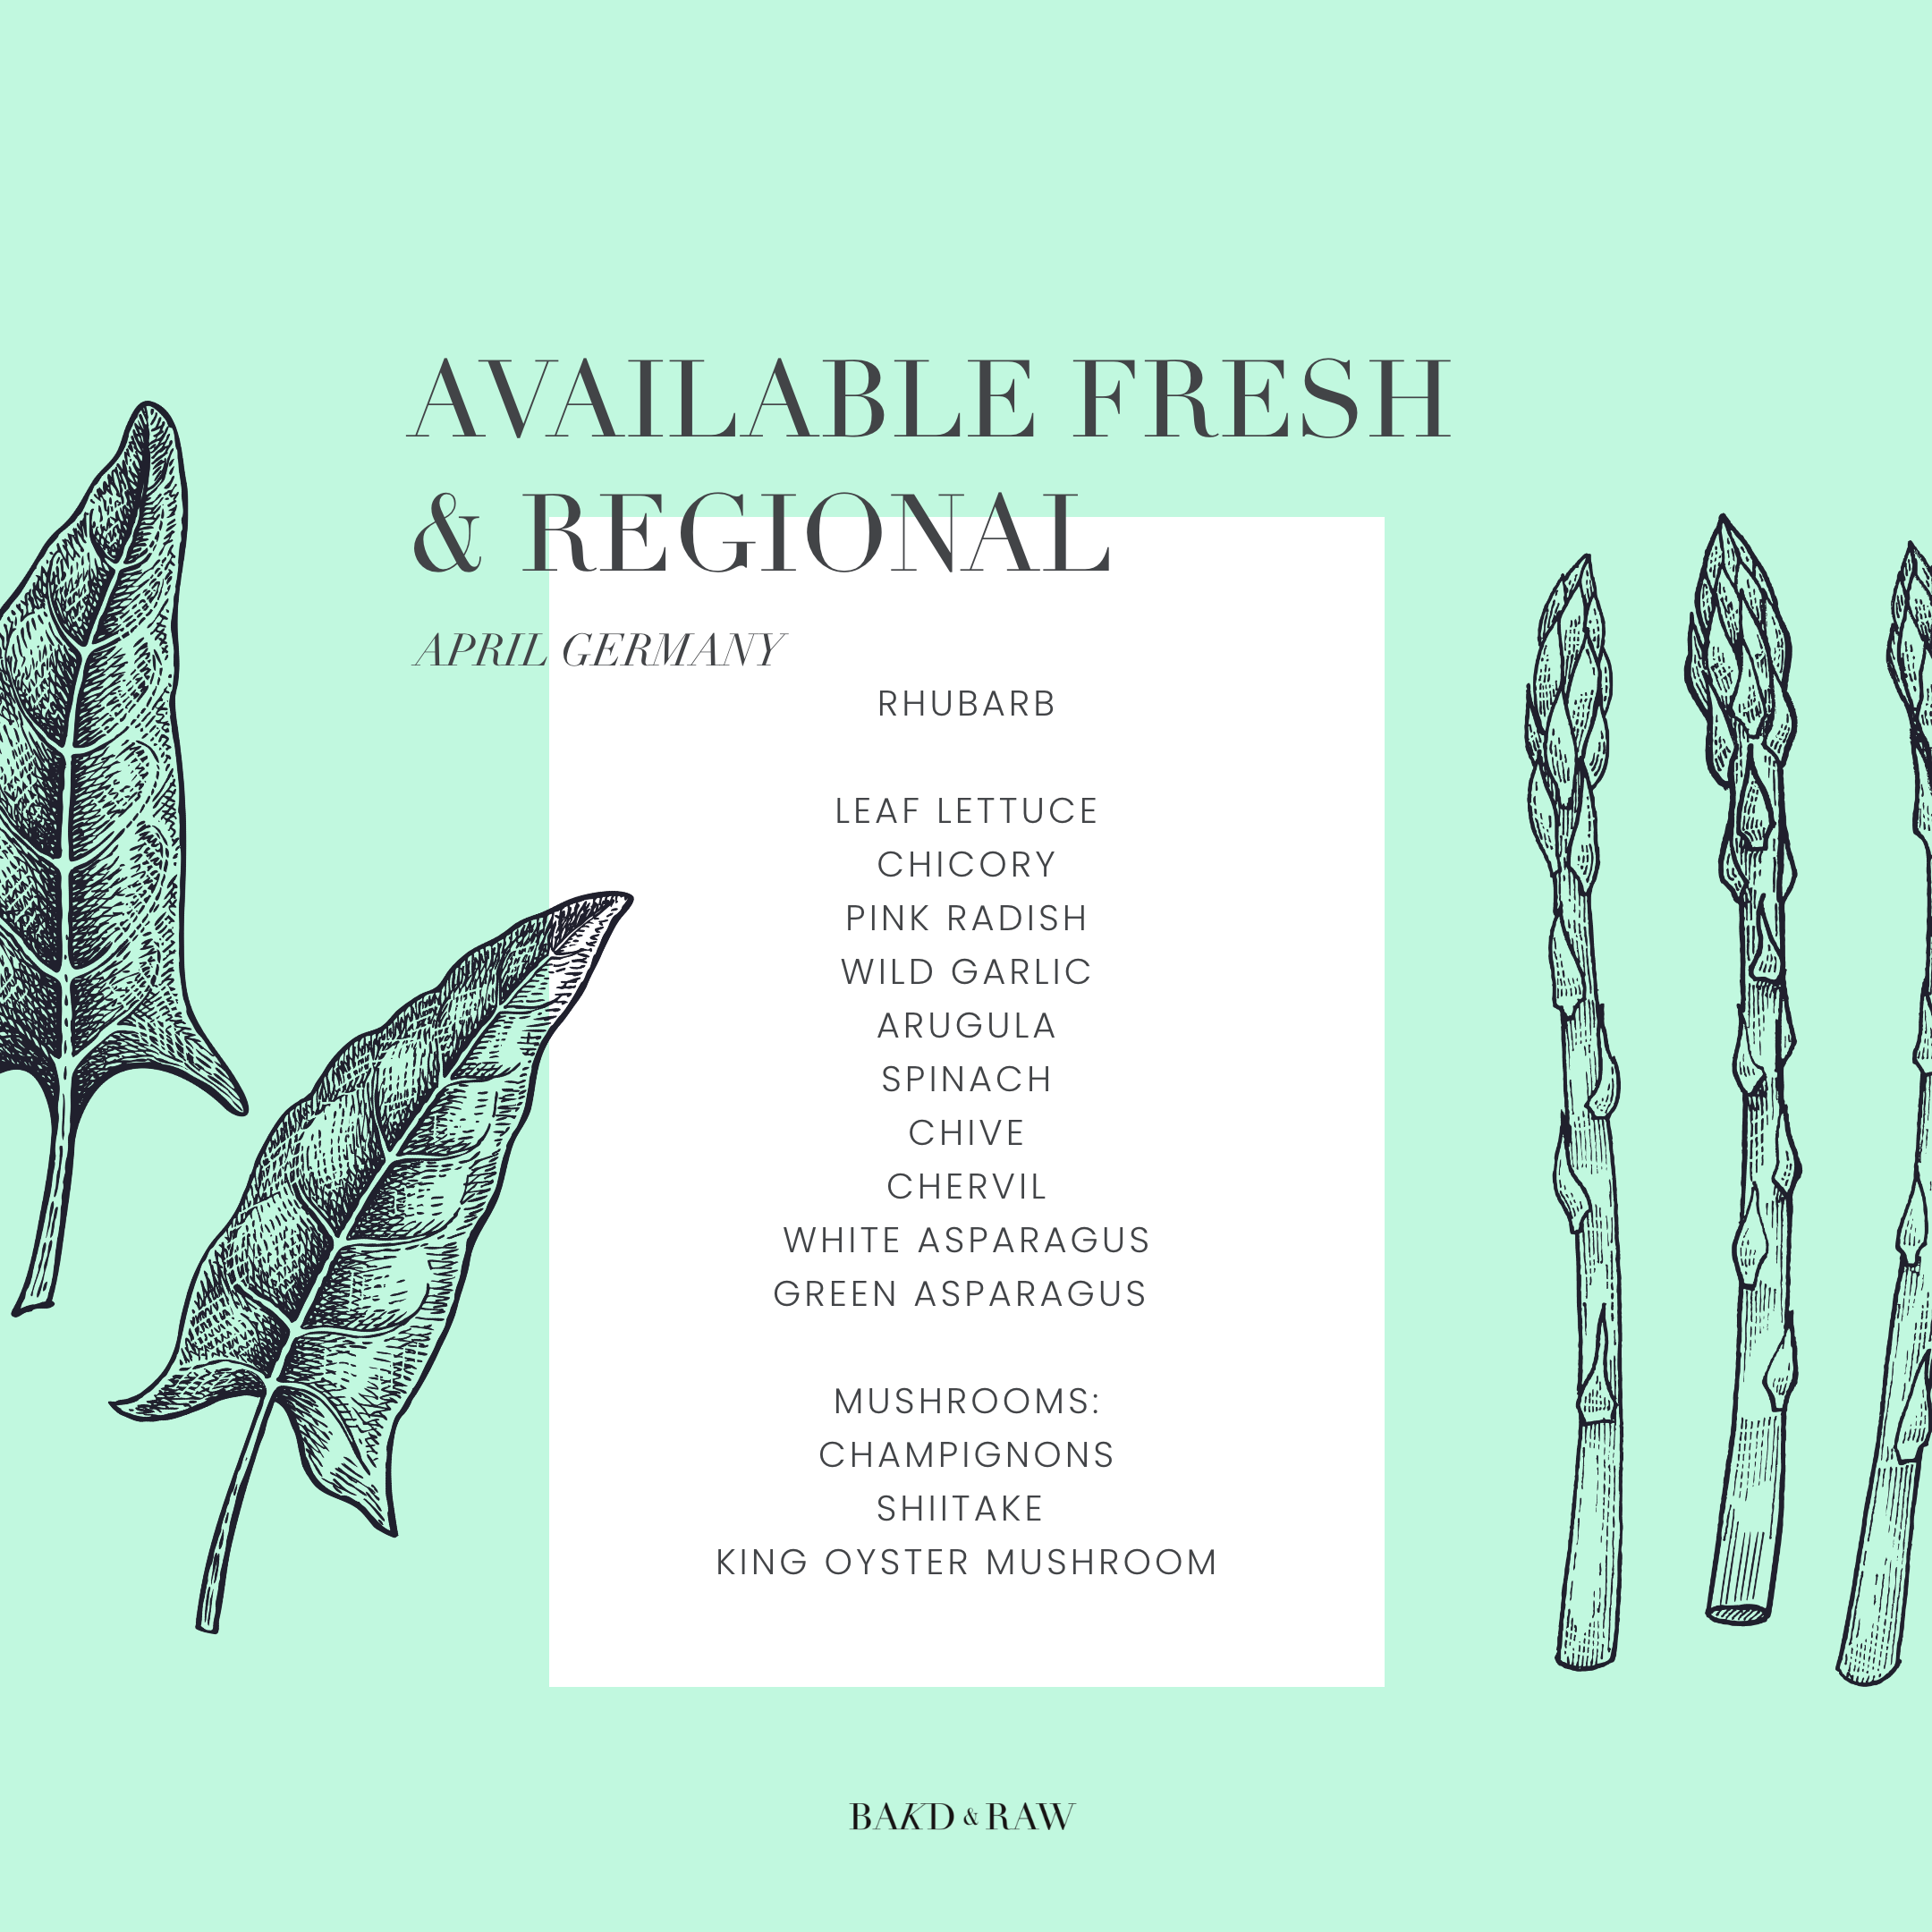 In Season in April, Regionally available by Bakd&Raw